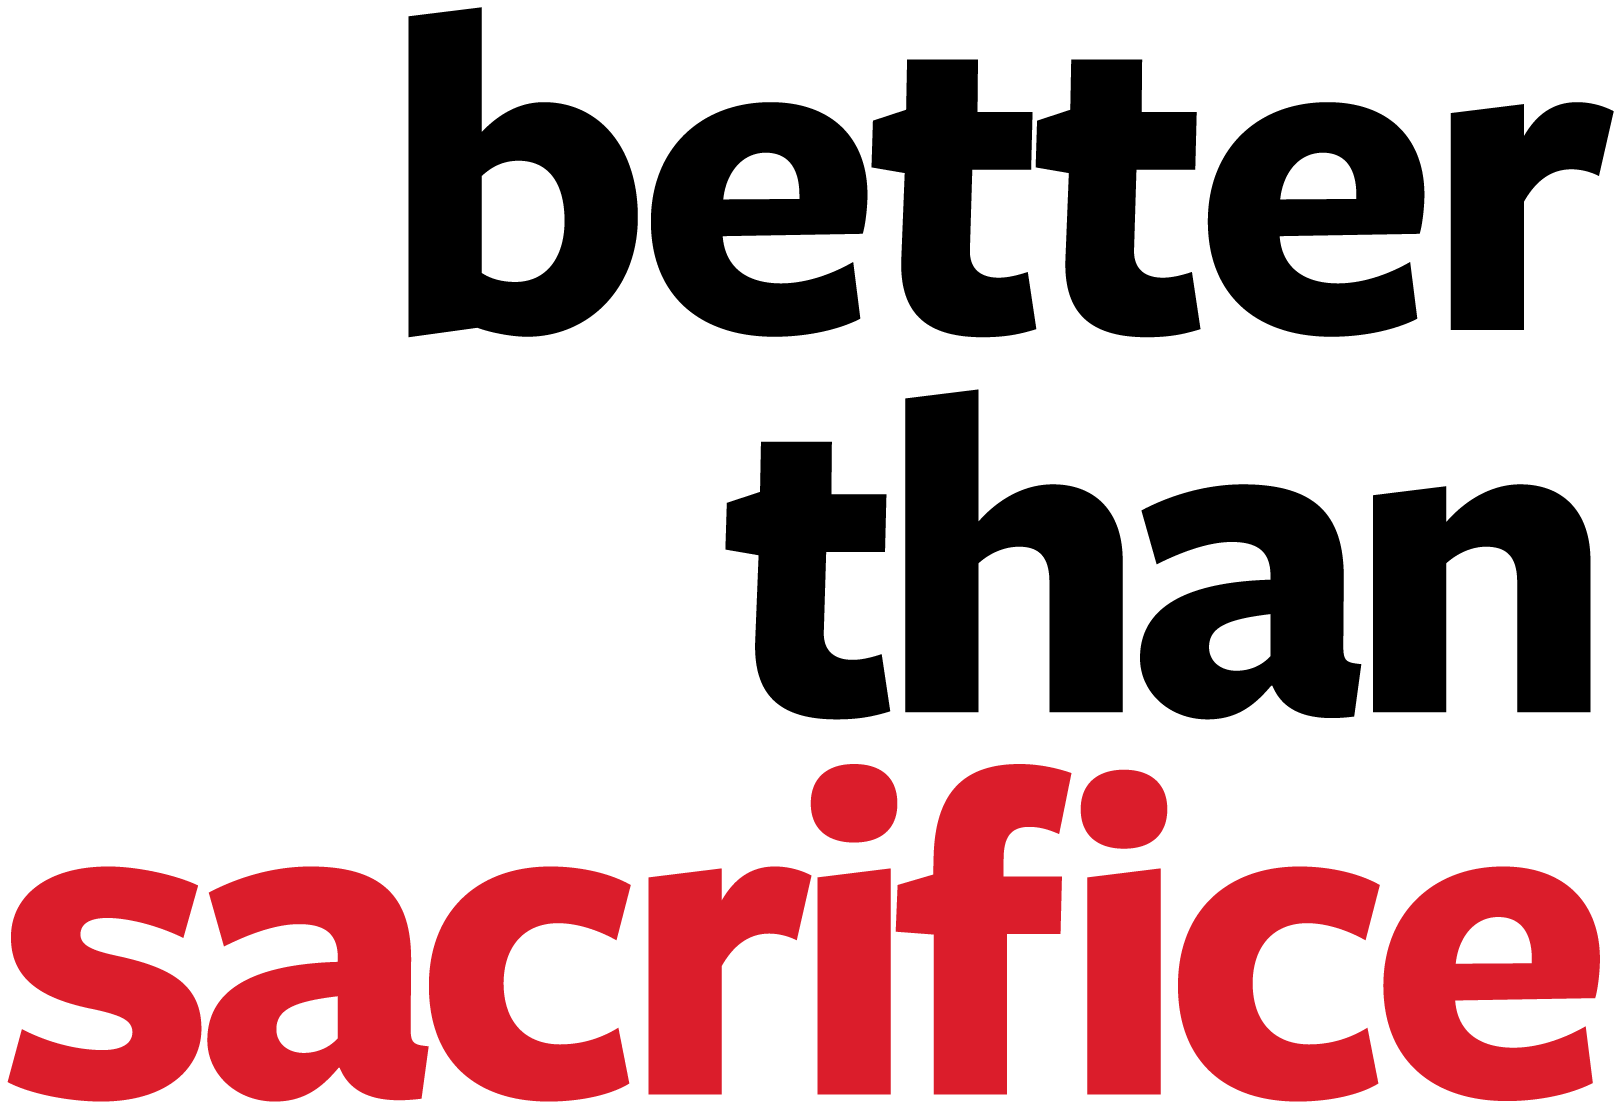 BetterThanSacrifice.org